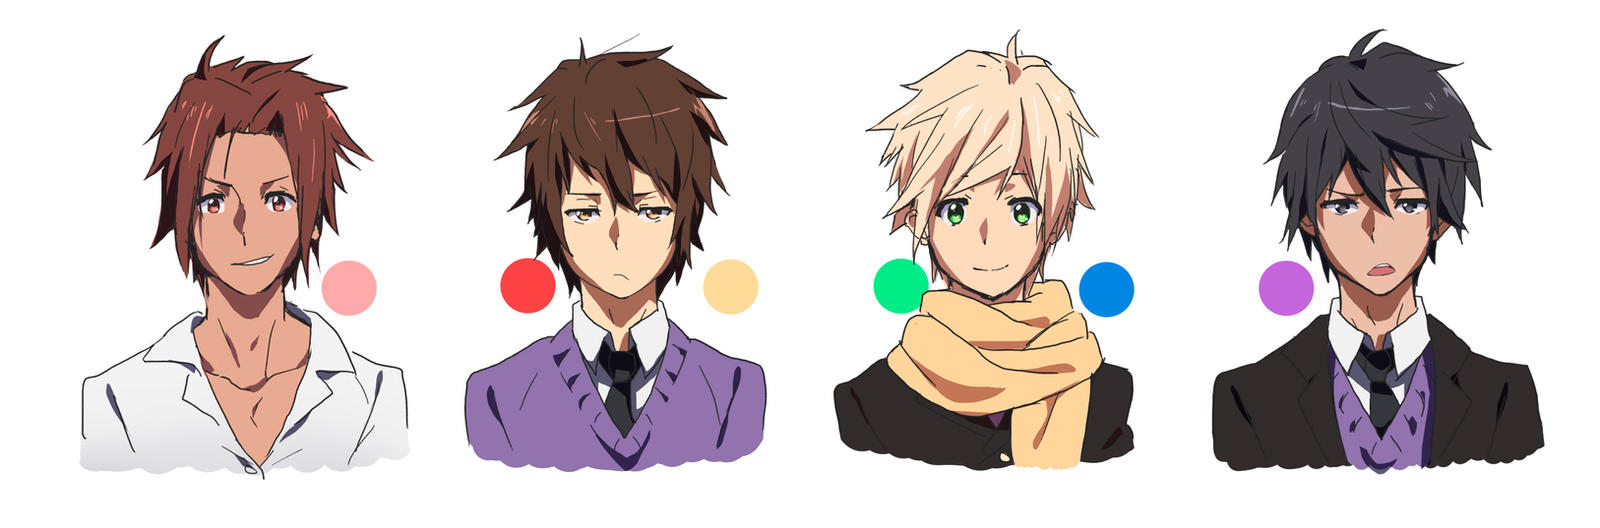 Male Characters By Moxie2D